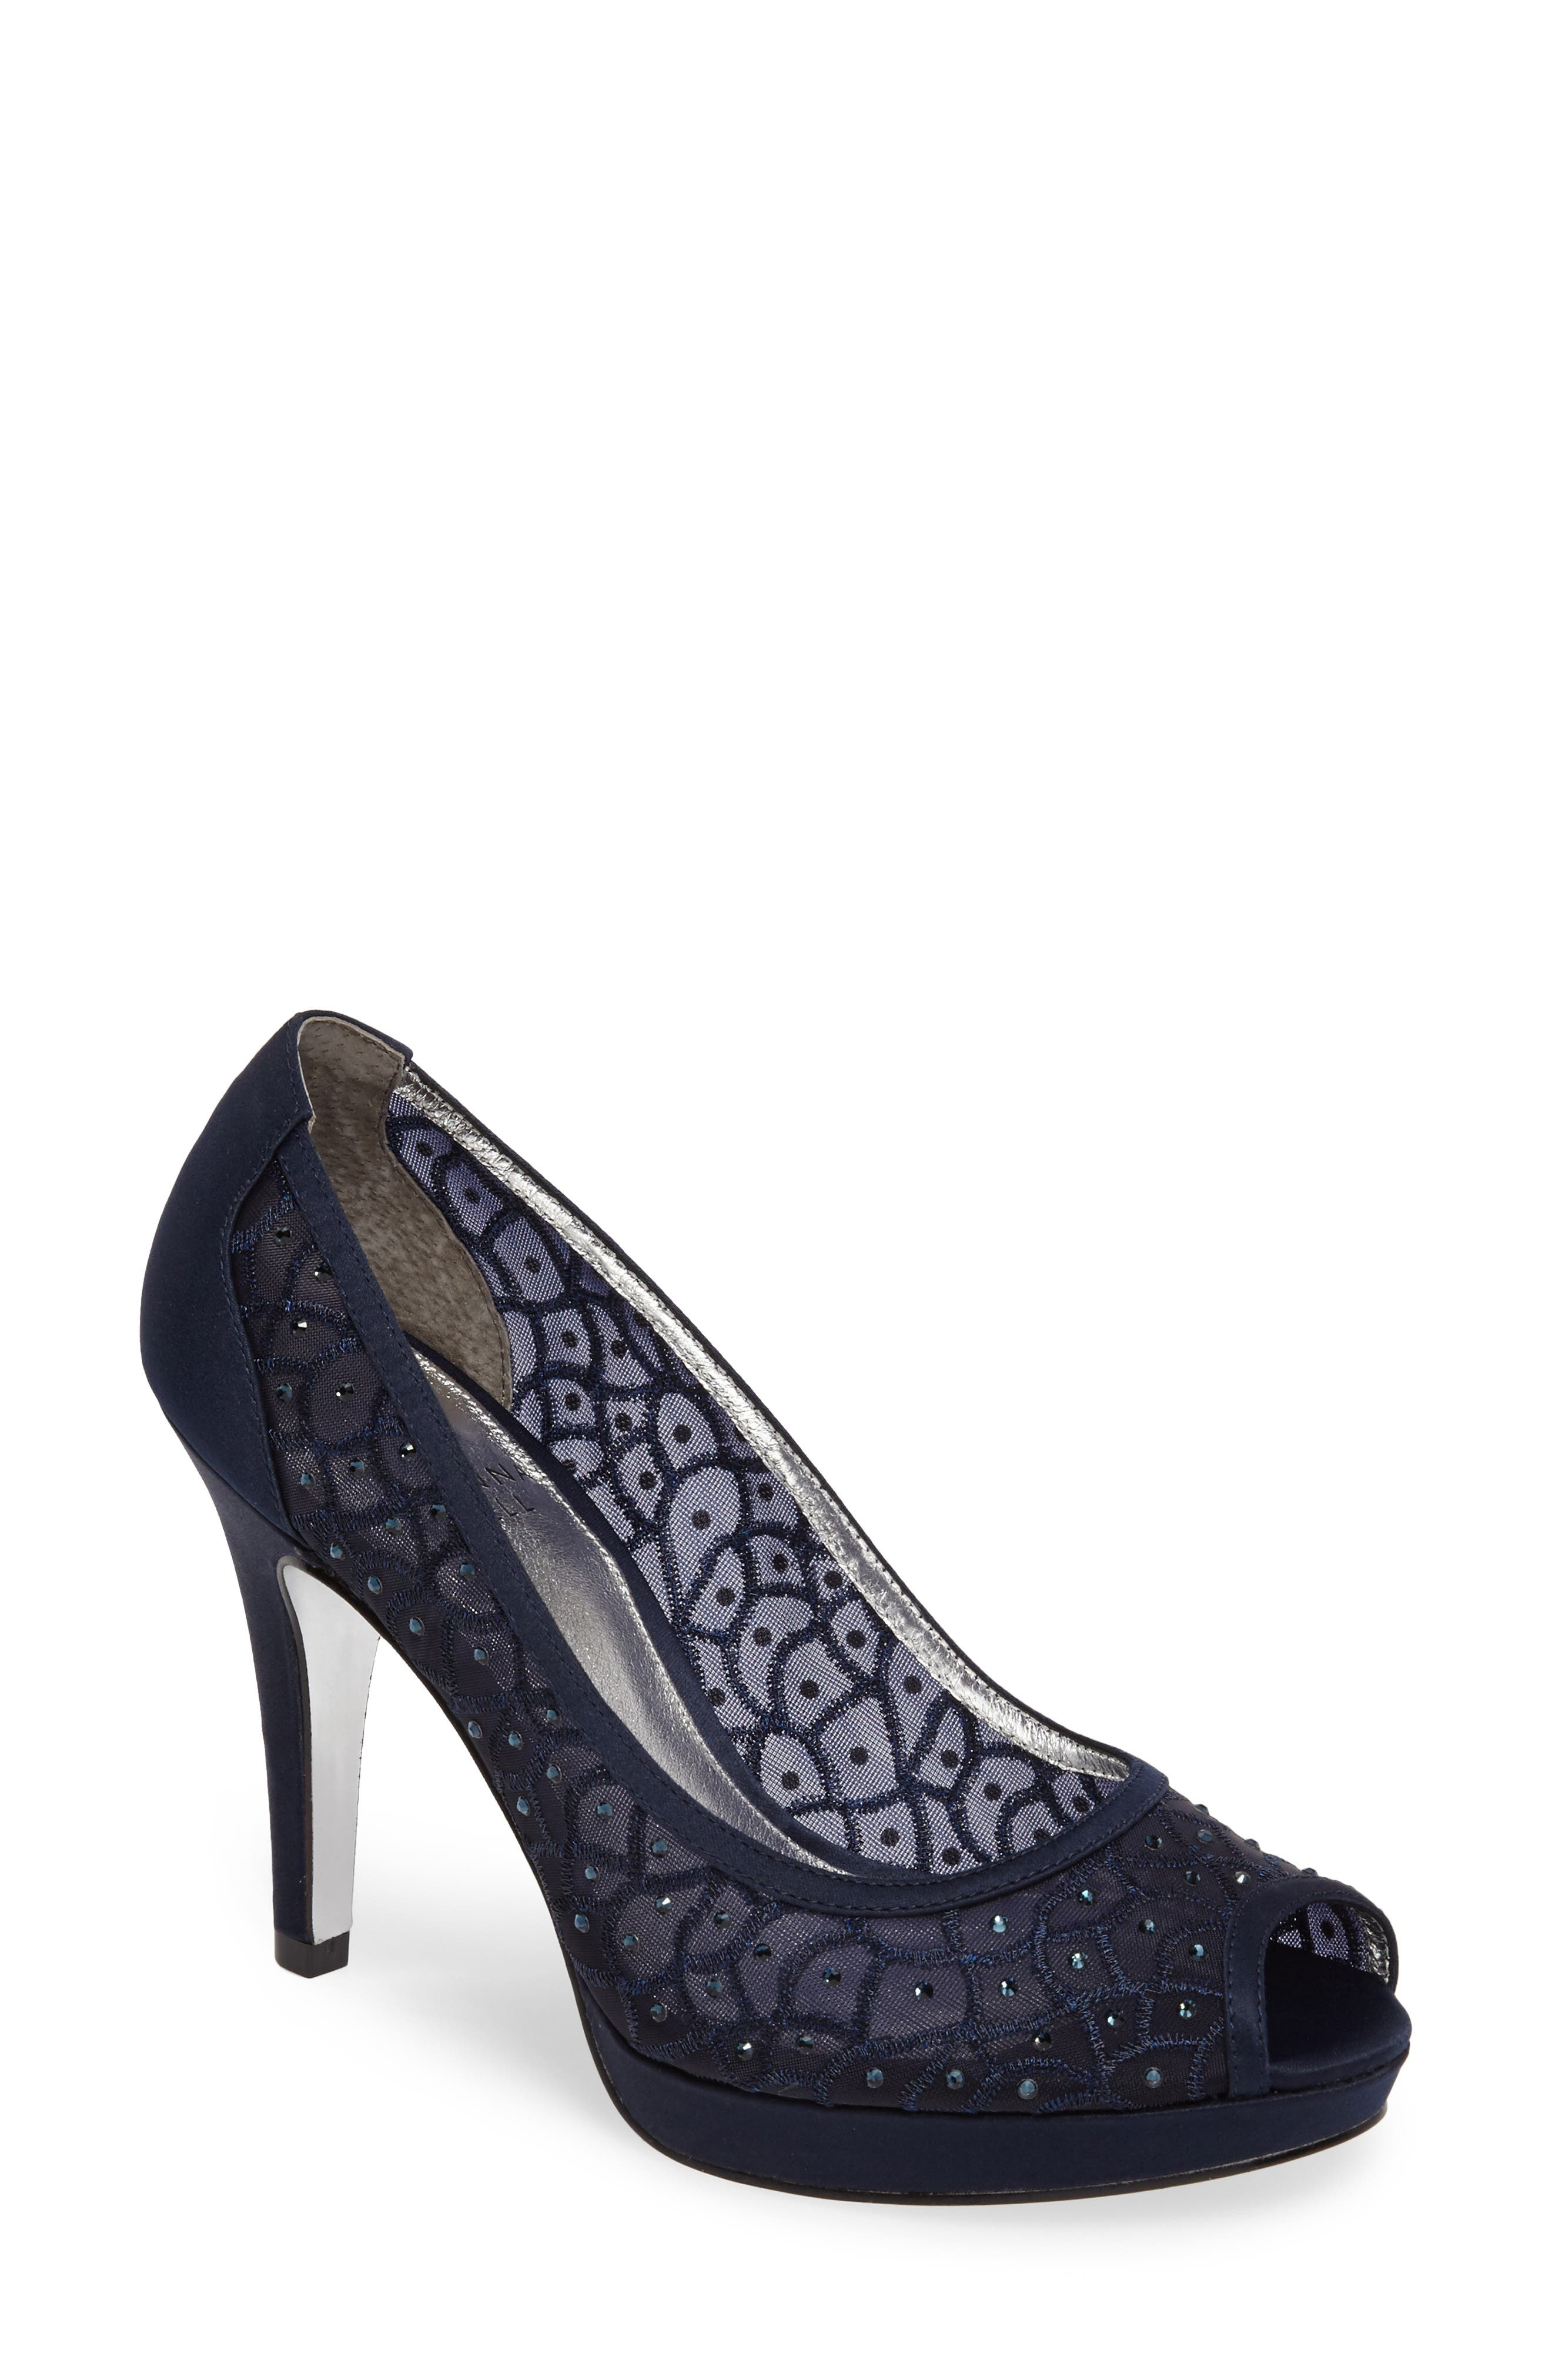 'Foxy' Crystal Embellished Peeptoe Pump,                             Main thumbnail 1, color,                             NAVY SATIN